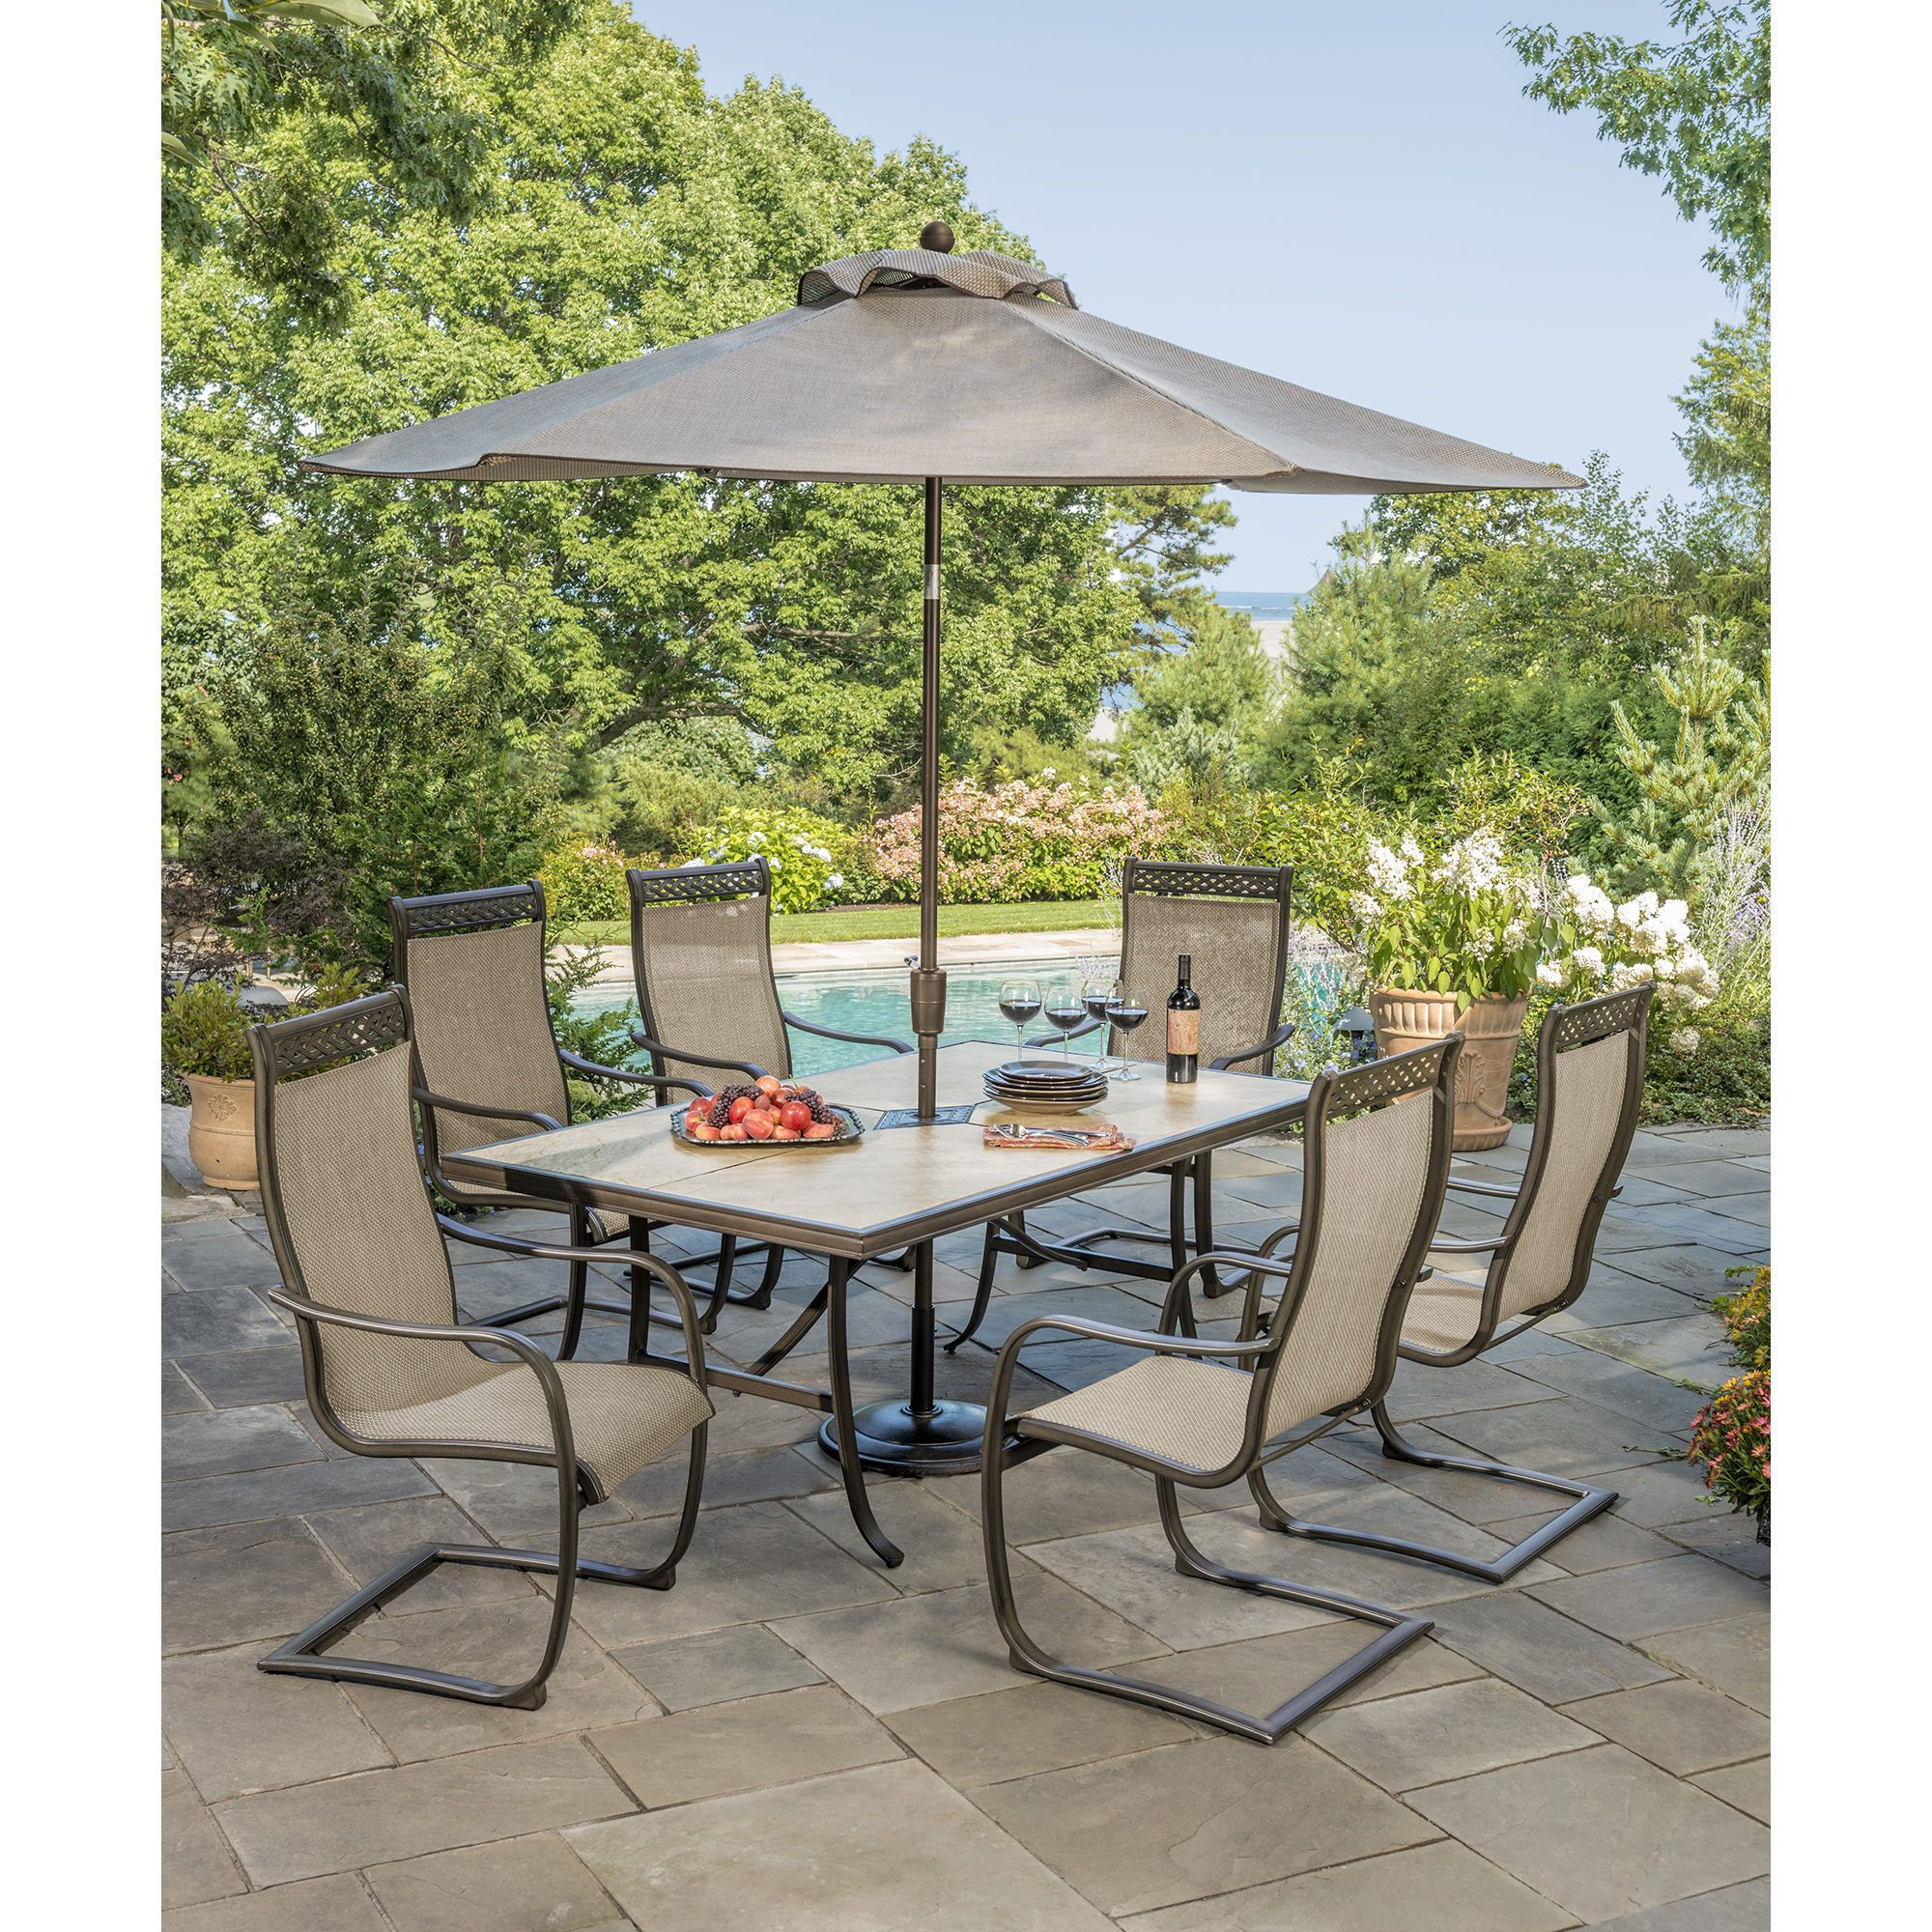 Berkley Jensen Trevi 7 Pc Patio Set